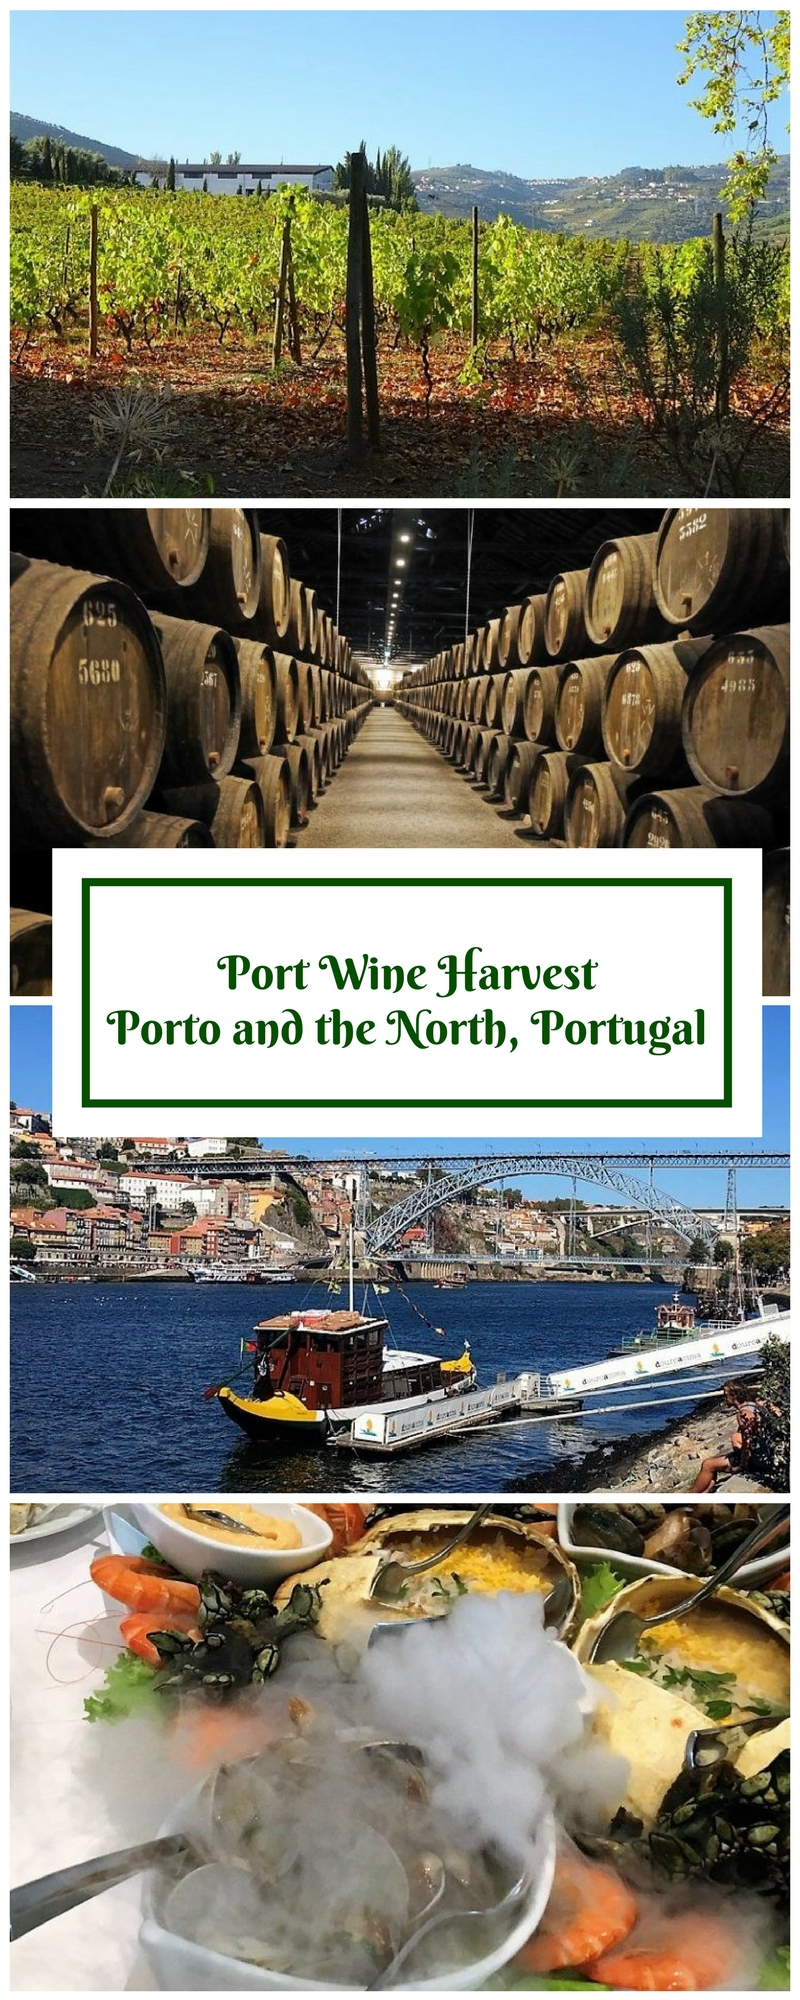 Port Wine Harvest - Porto, Northern Portugal